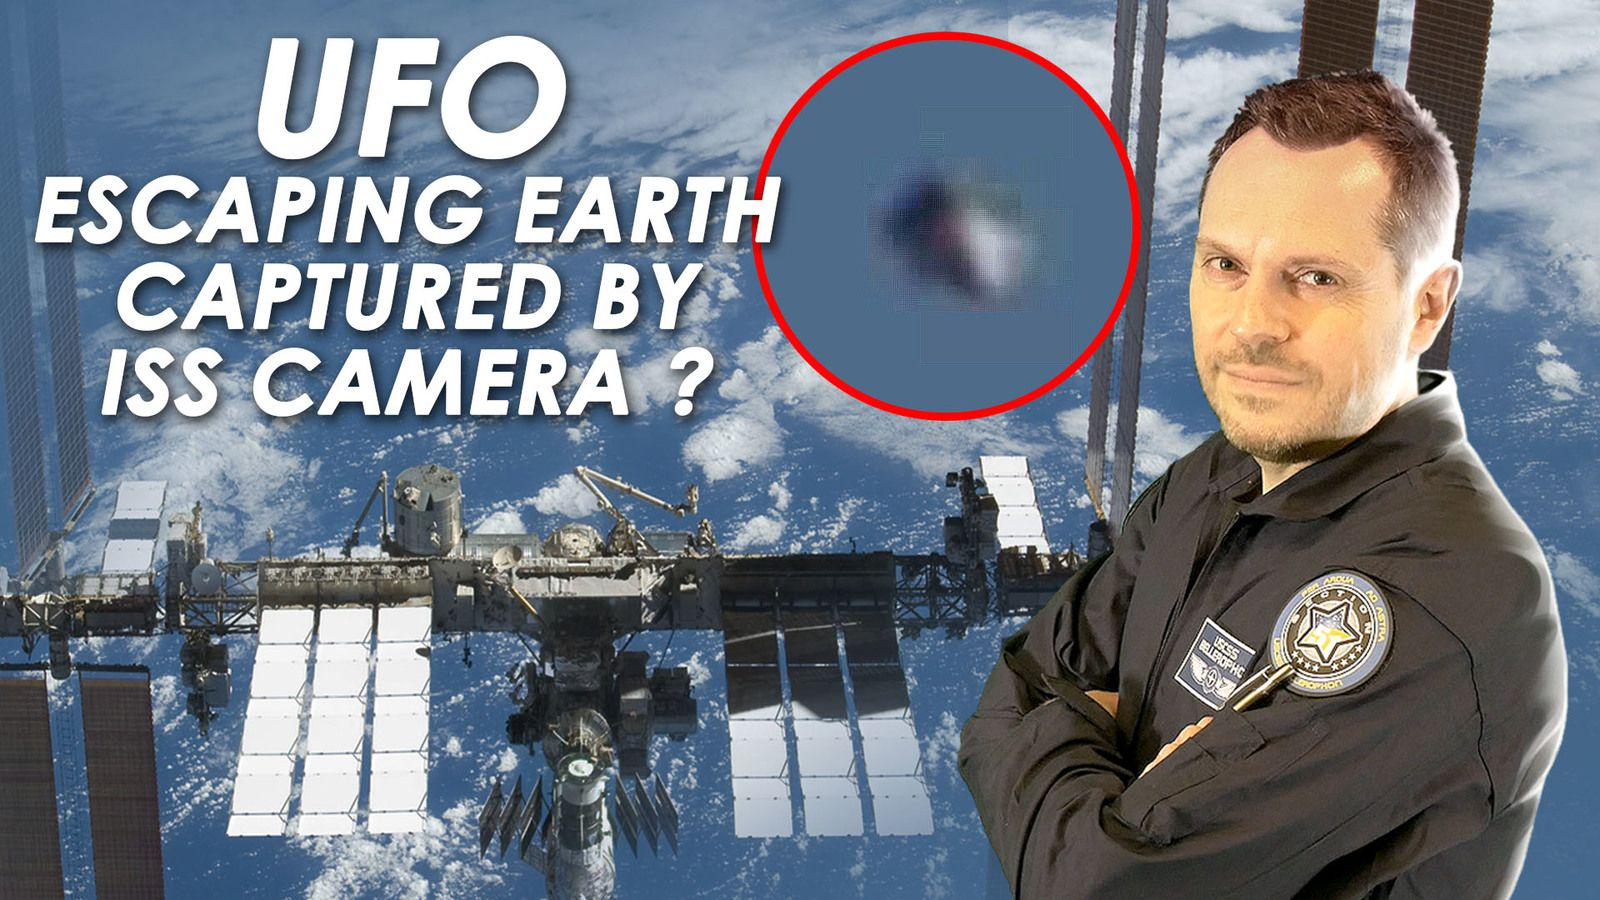 👽 Did ISS Camera Really Capture Cone Shaped UFO Escaping Earth ?